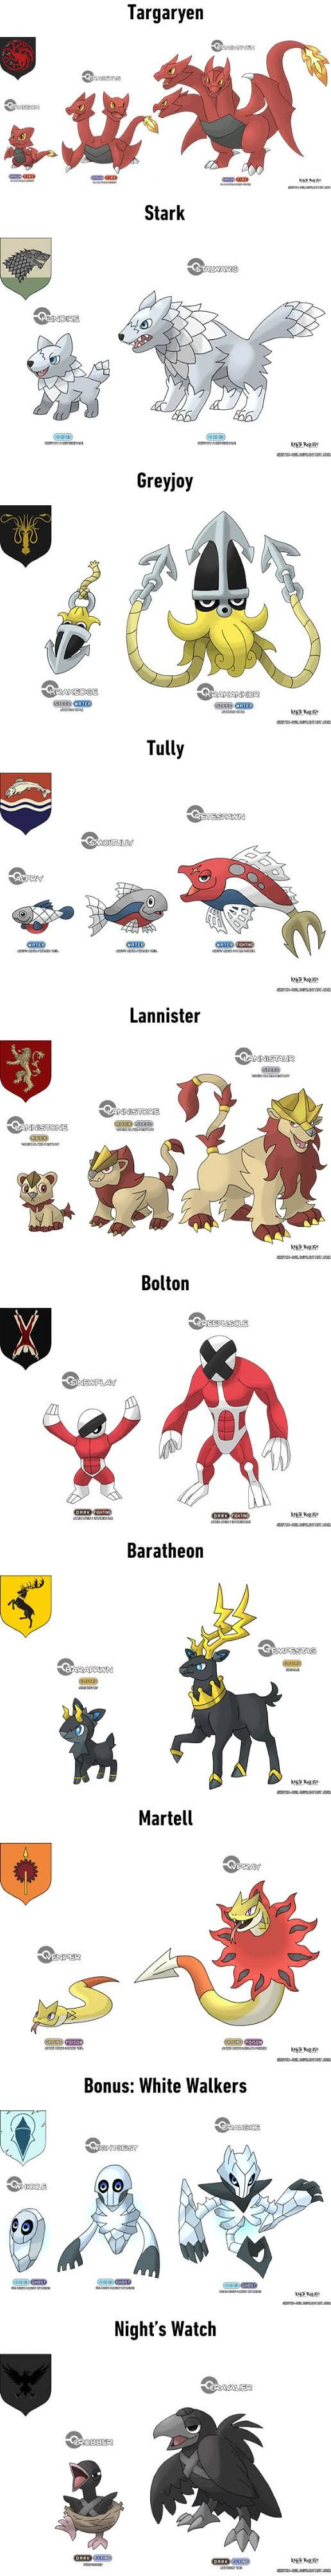 Game of Thrones House Sigils Illustrated as Pokémon Characters